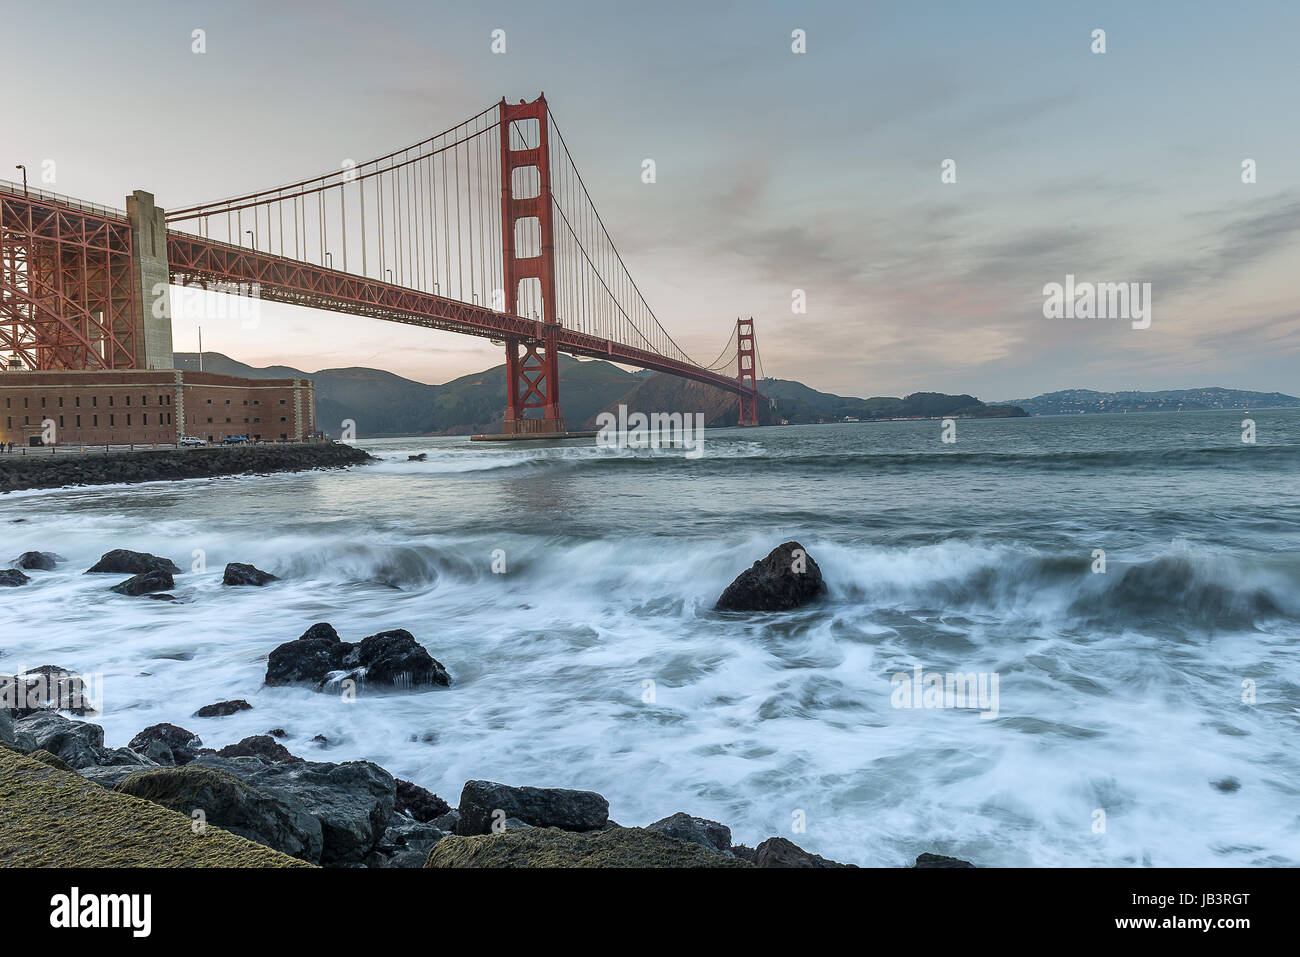 World Famous landmark of the world, Golden Gate Birdge - Stock Image